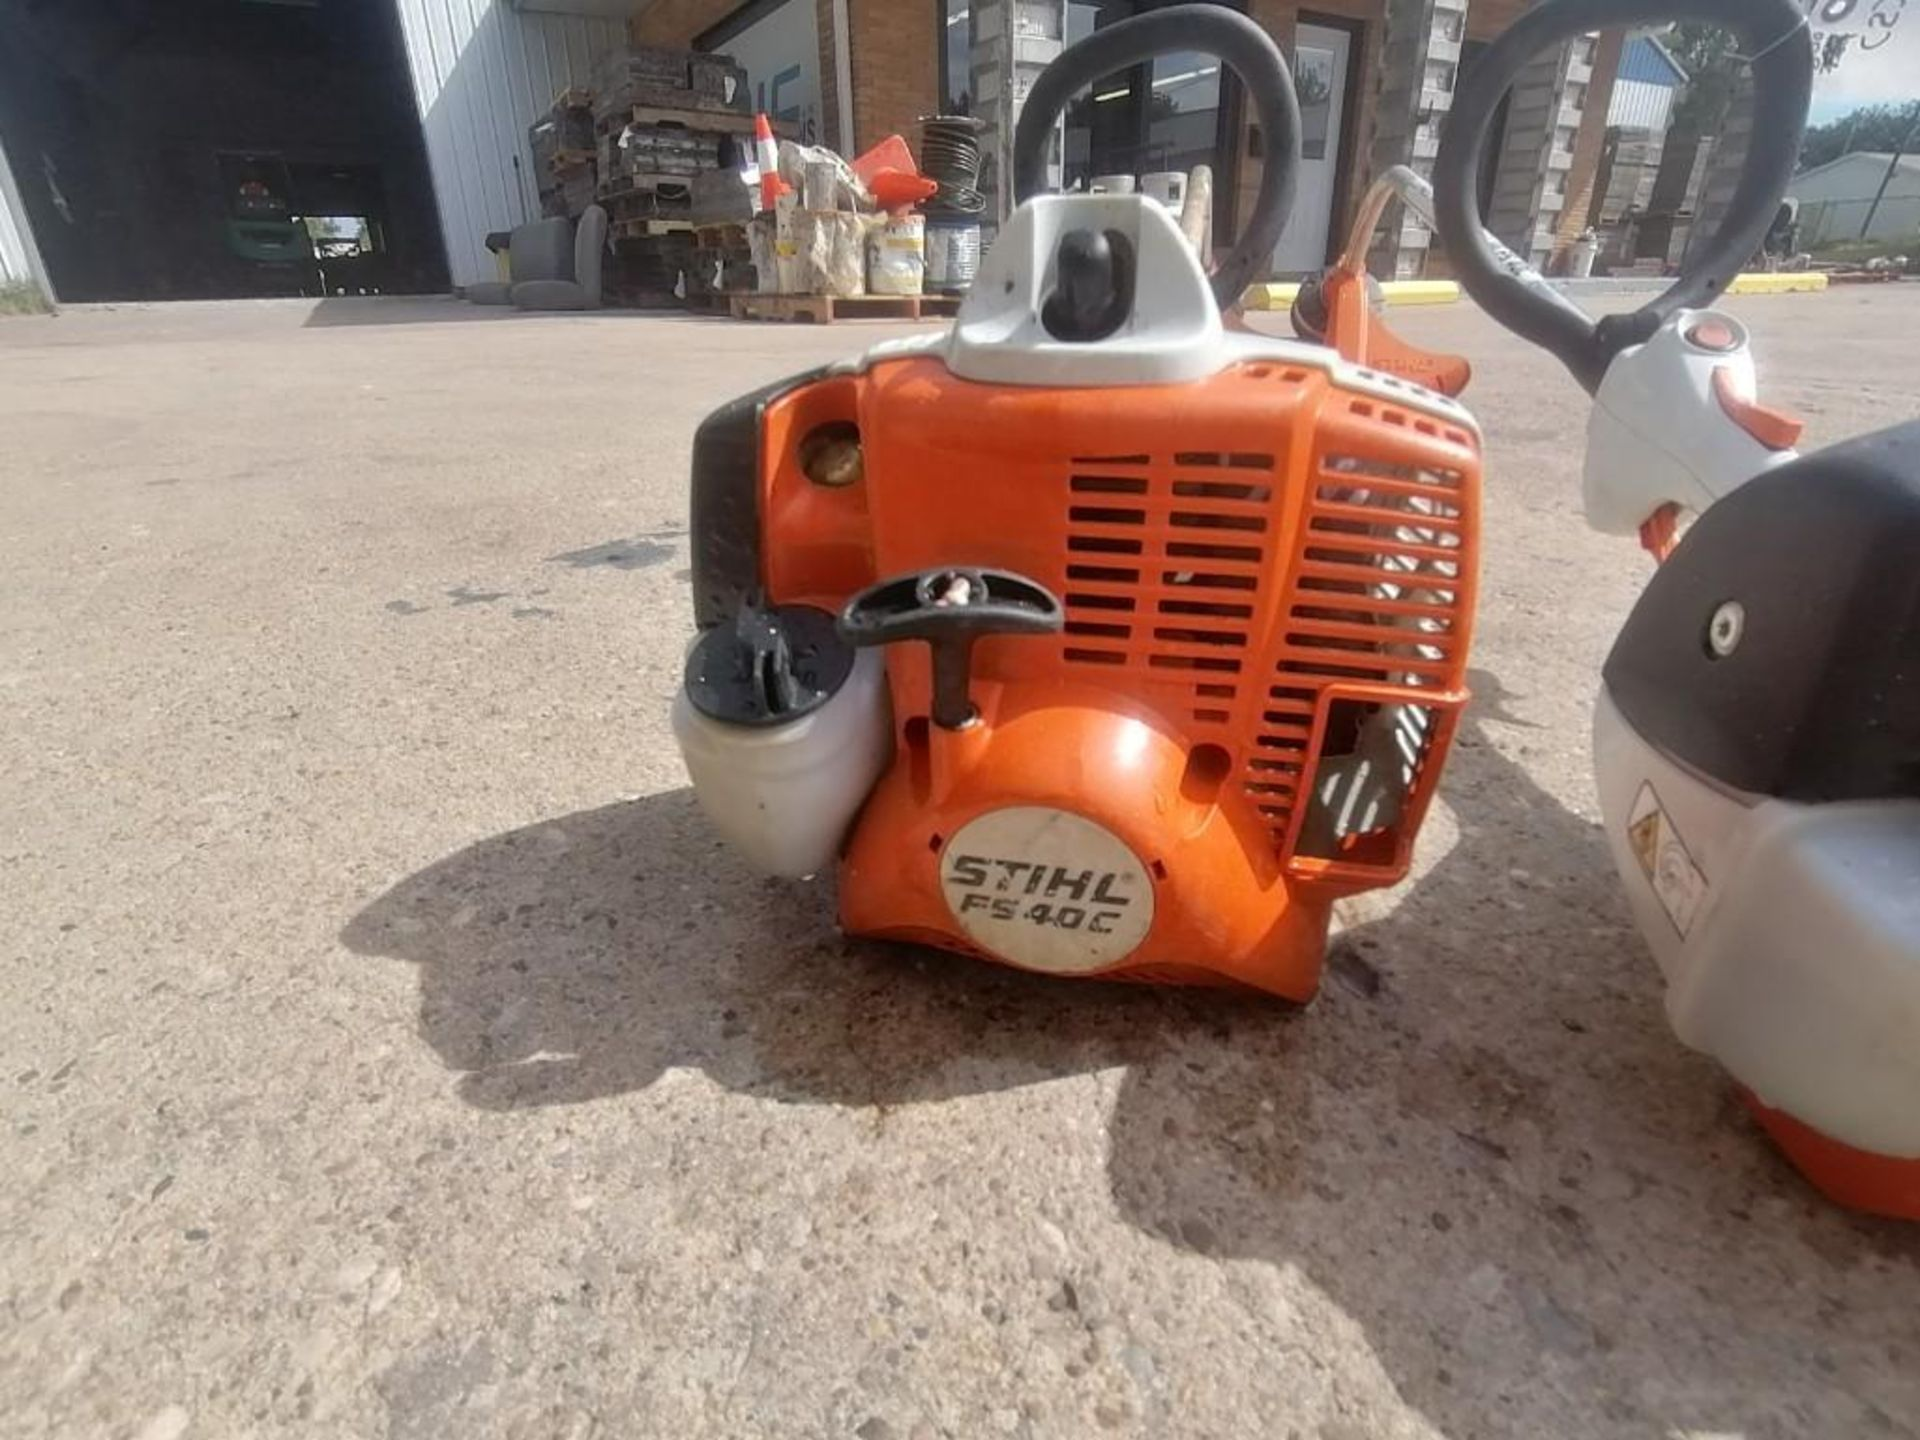 Lot 36 - (2) Stihl FS40C String Trimmer. Located at 301 E Henry Street, Mt. Pleasant, IA 52641.